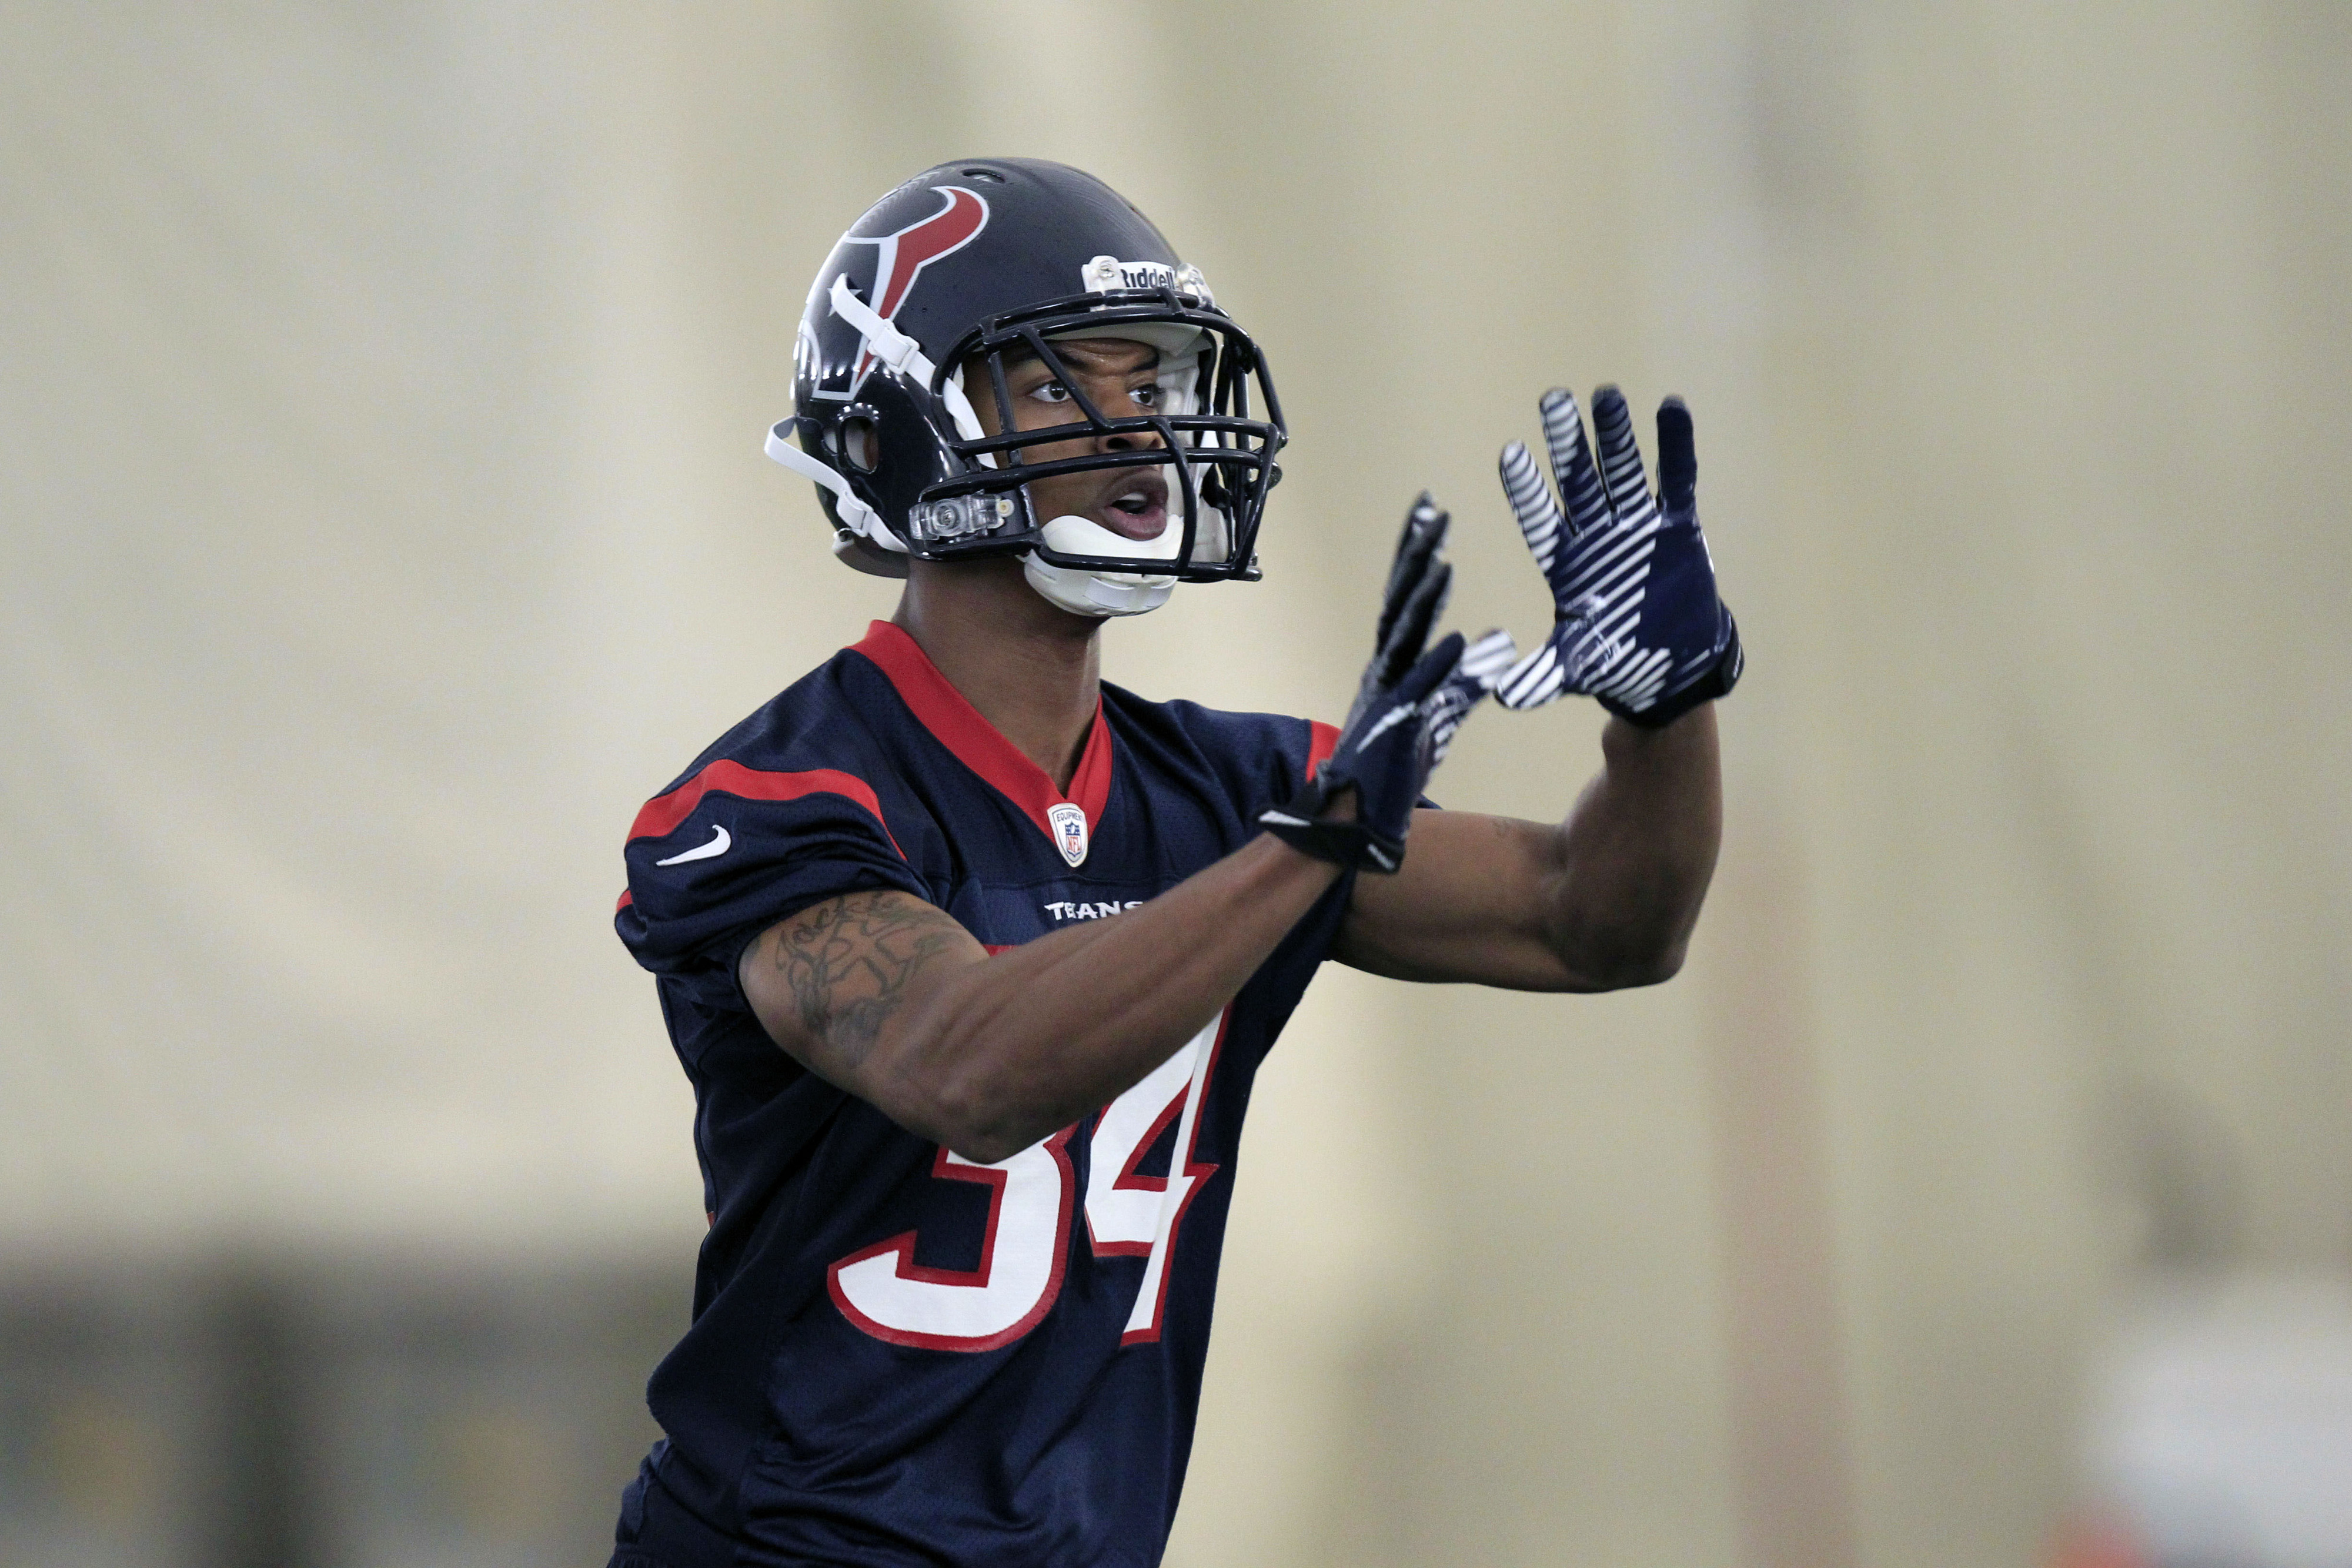 If D.J. Swearinger can be believed, this man just made the Texans' 53.